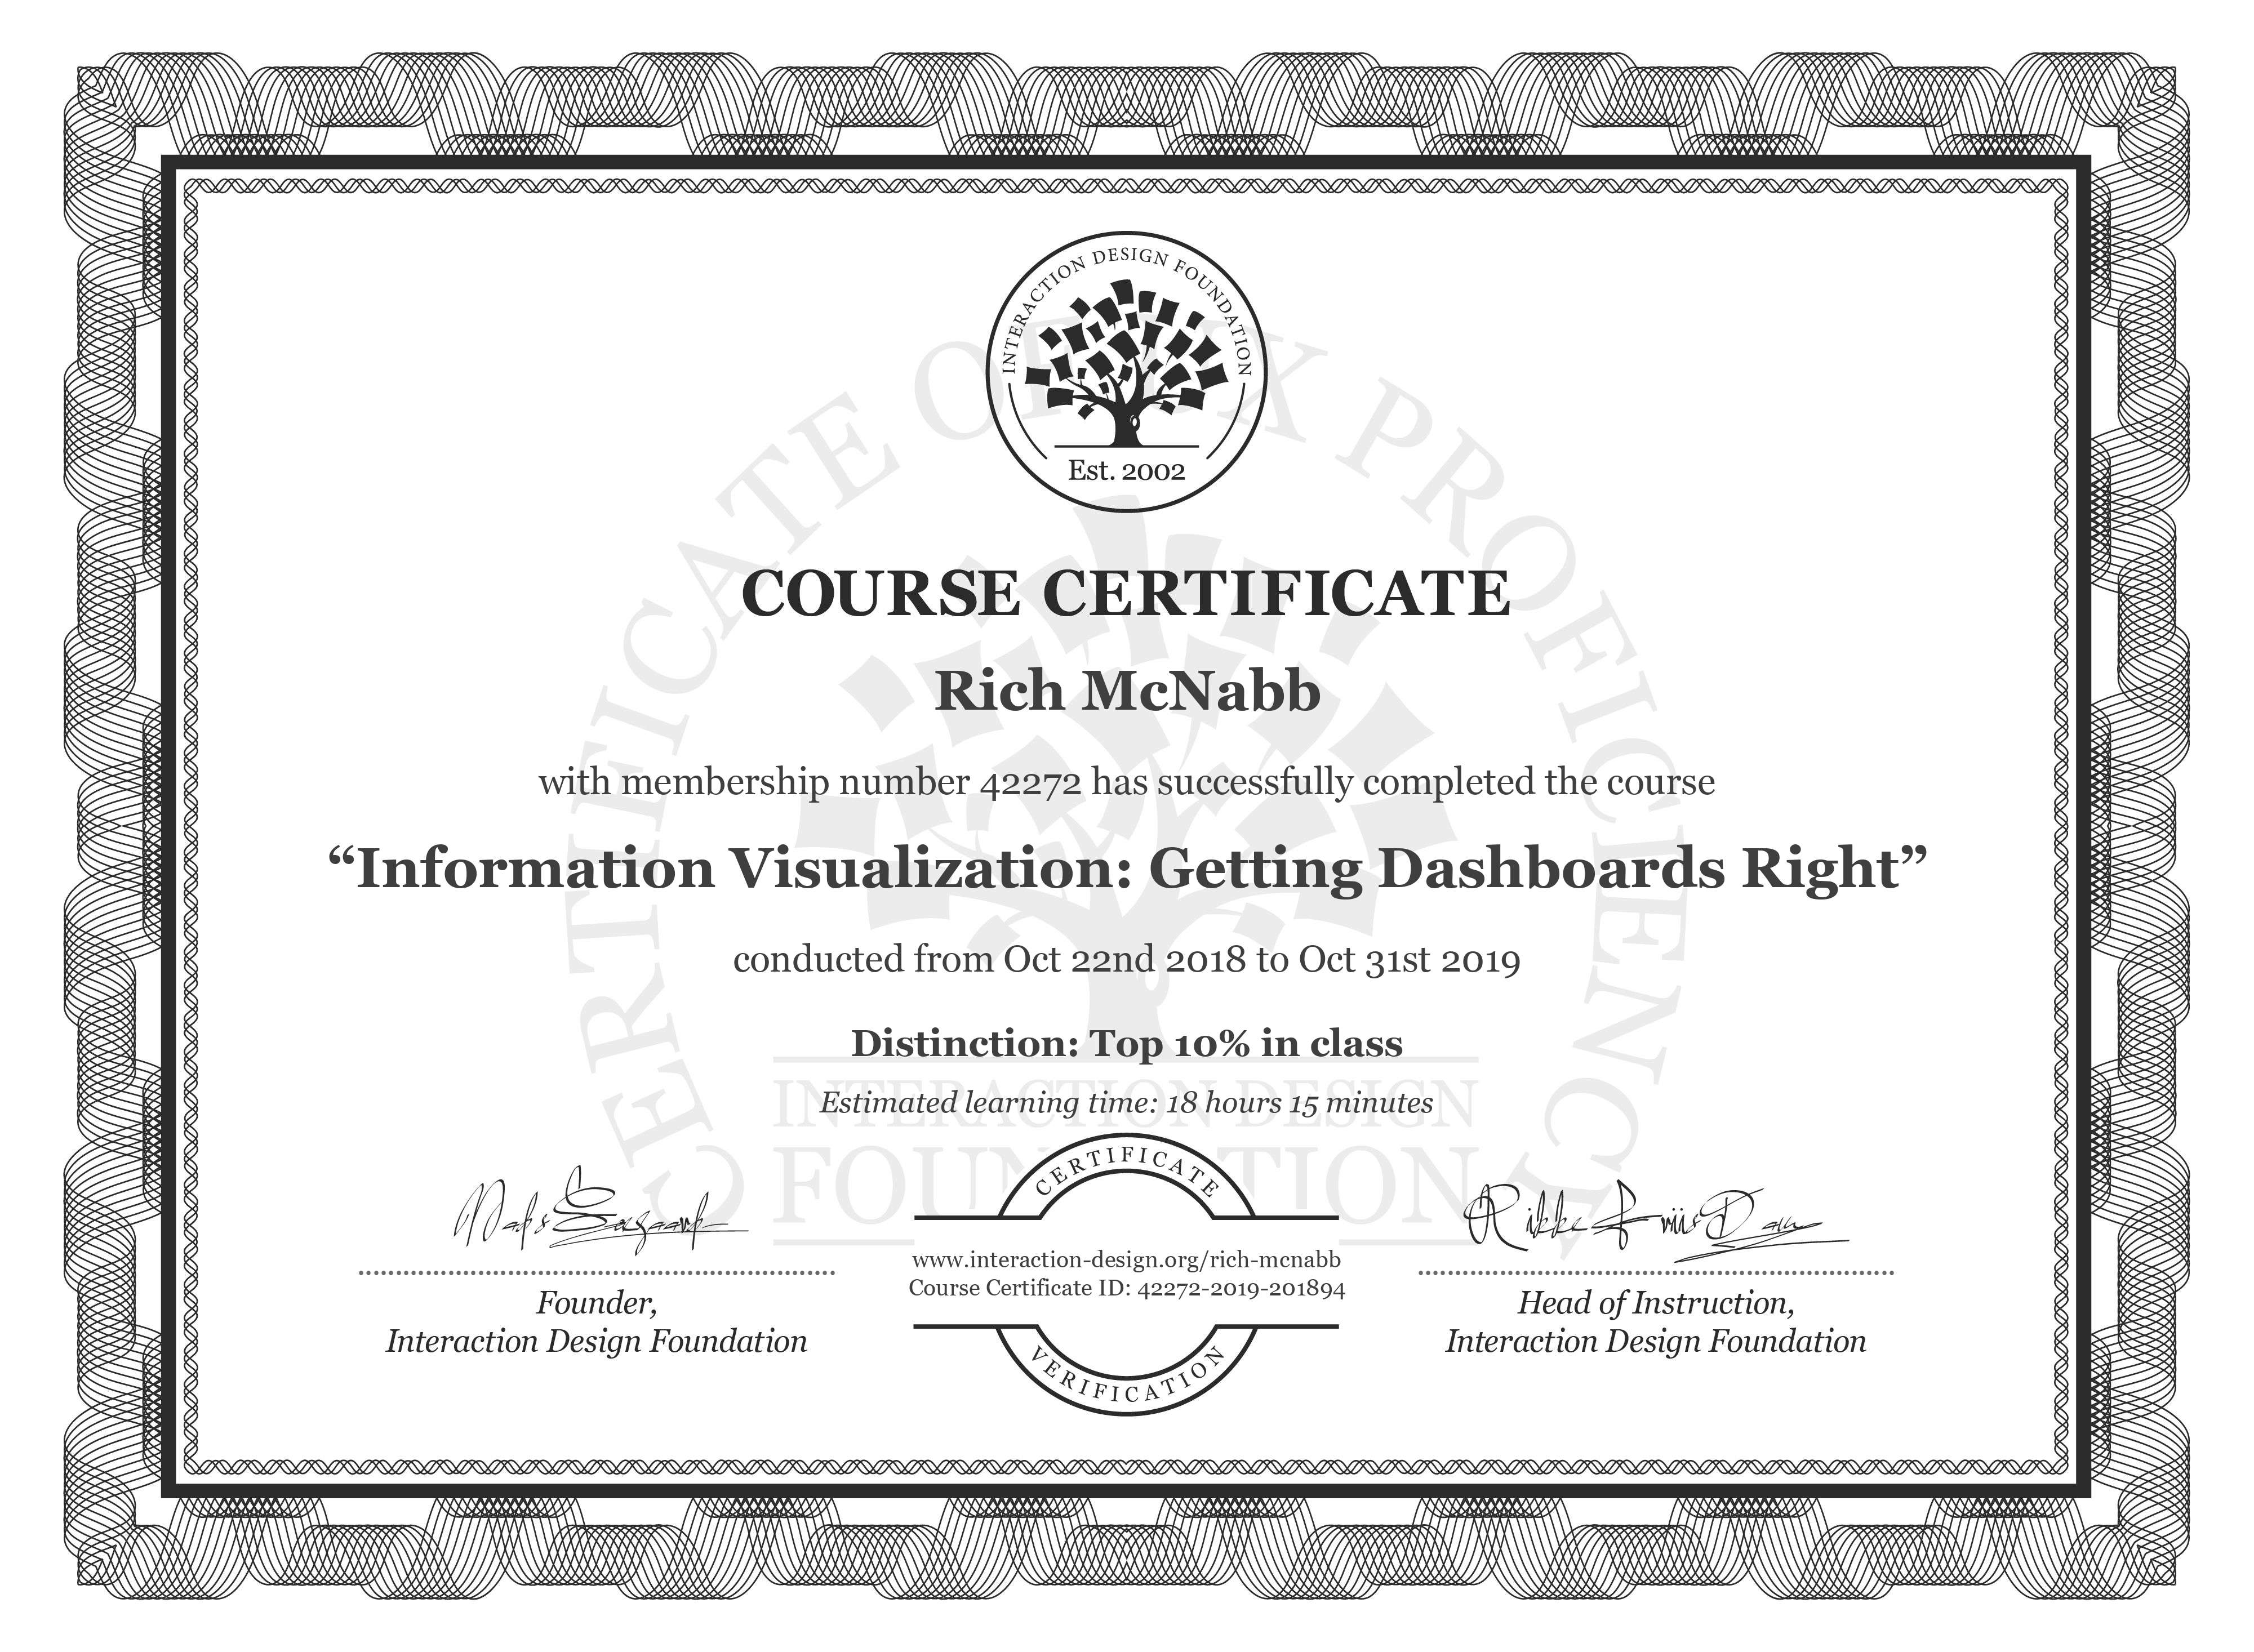 Rich McNabb's Course Certificate: Information Visualization: Getting Dashboards Right